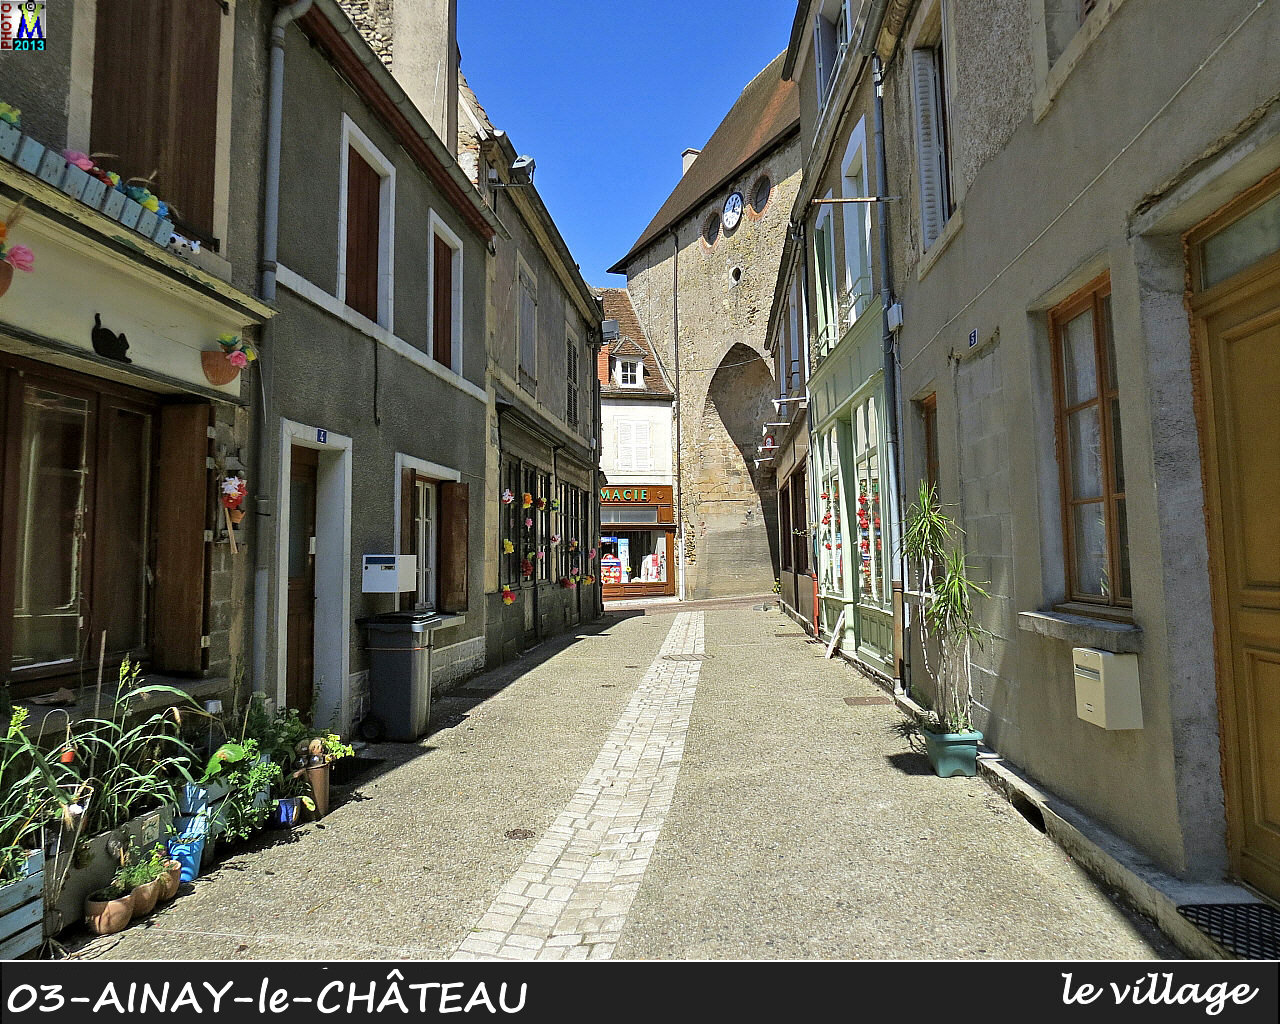 03AINAY-CHATEAU_village_102.jpg